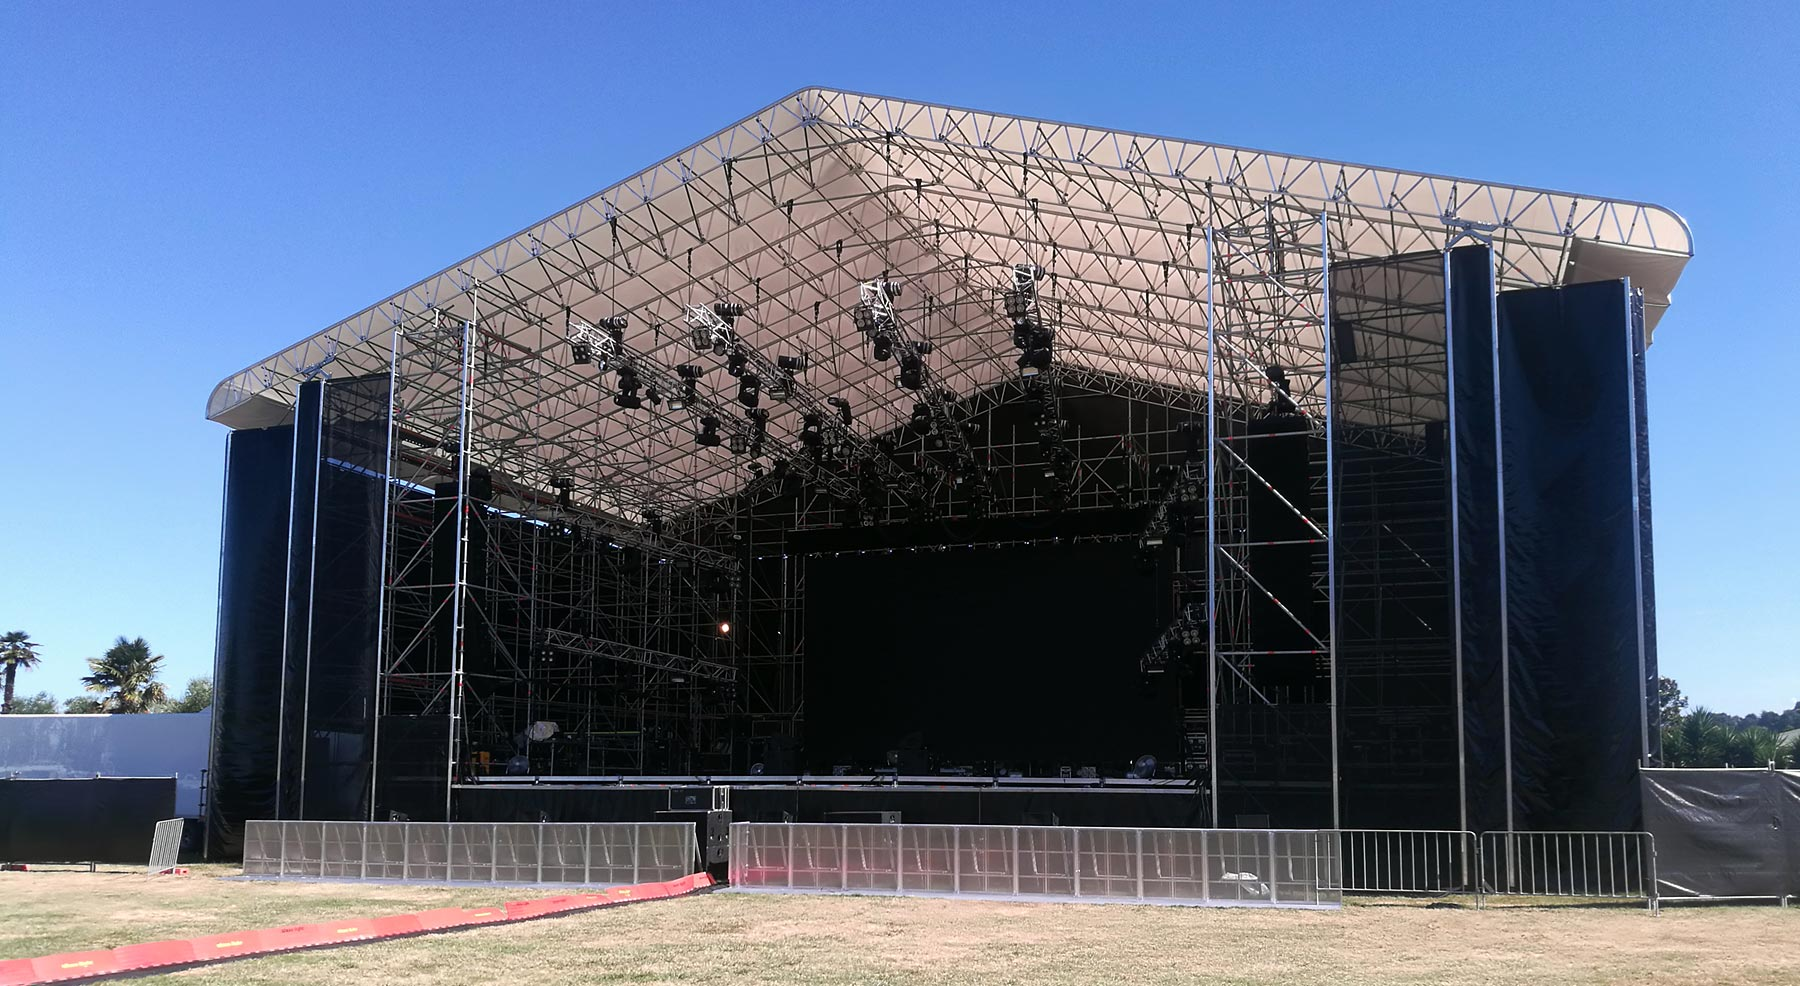 https://rocketscaffold.co.nz/wp-content/uploads/2019/08/img-rocket-scaffolding-hero-concert-staging-sideview-crop-1800px-new.jpg